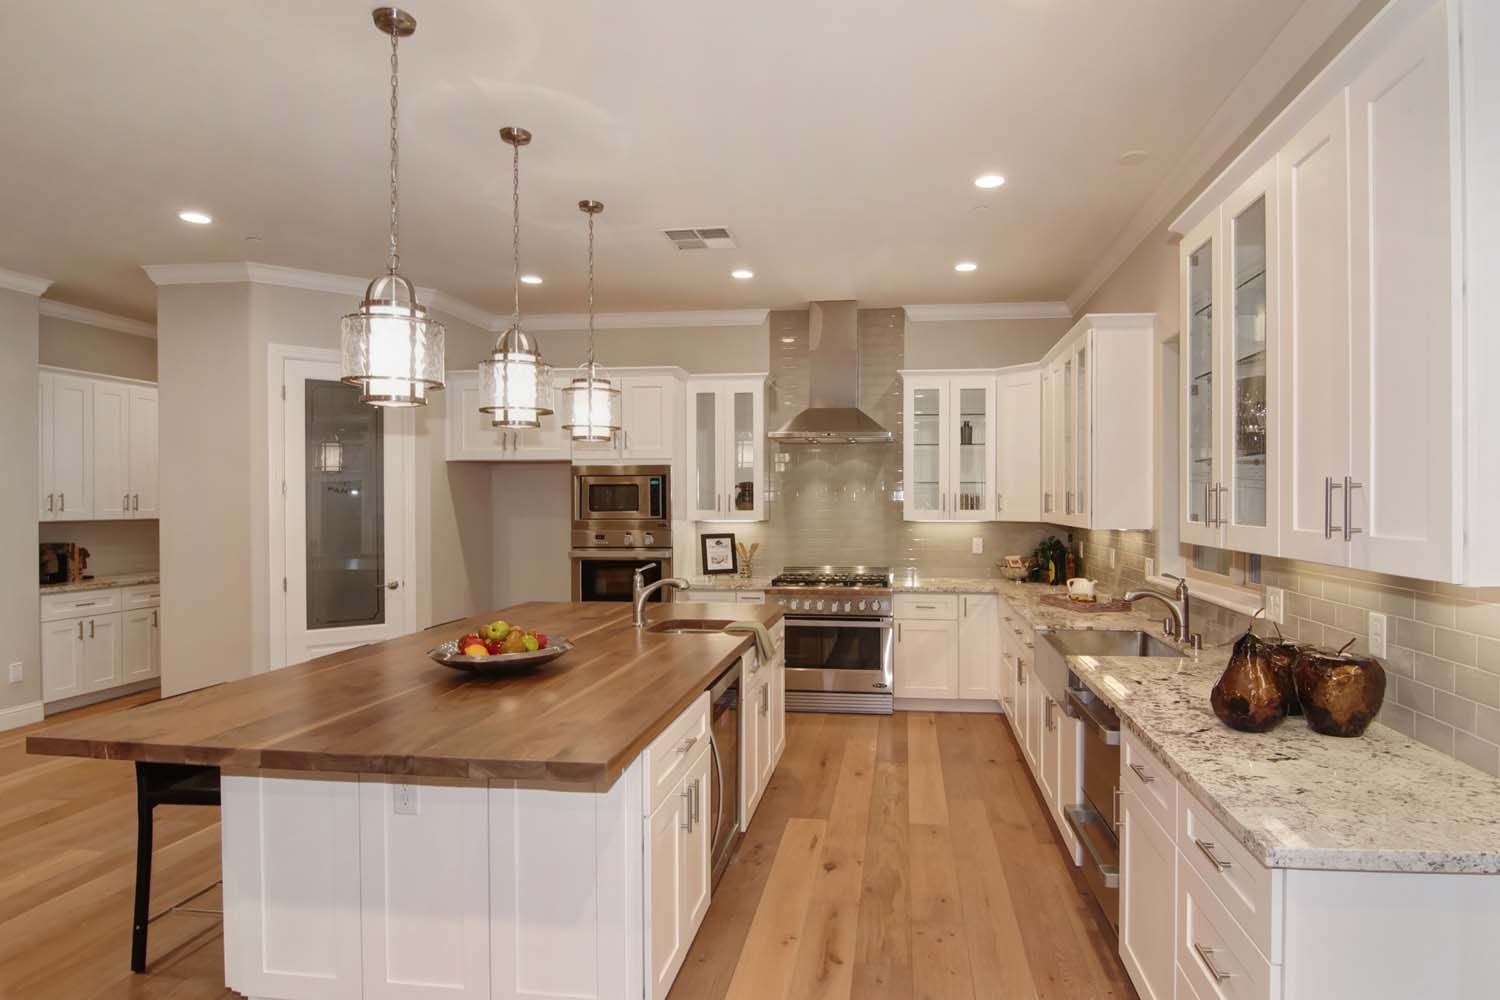 Cabinet Annex Sacramento Wholesale Kitchen Cabinets Kitchen Cabinets Prices Building Kitchen Cabinets